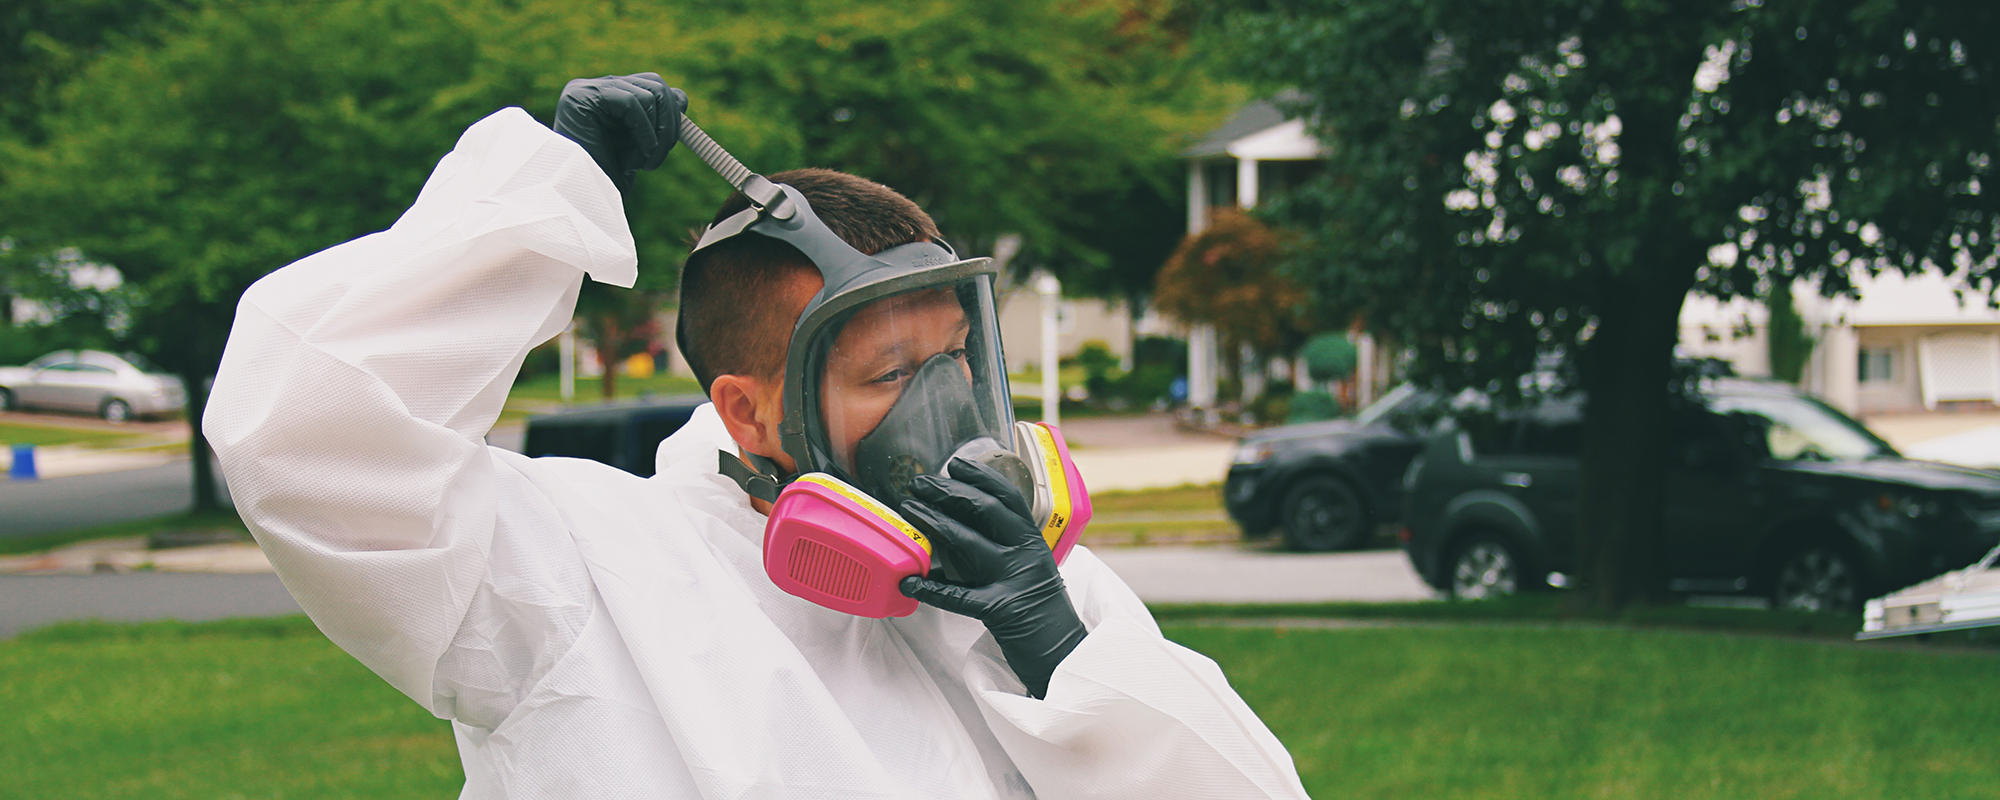 mold-remediation-riverton-nj